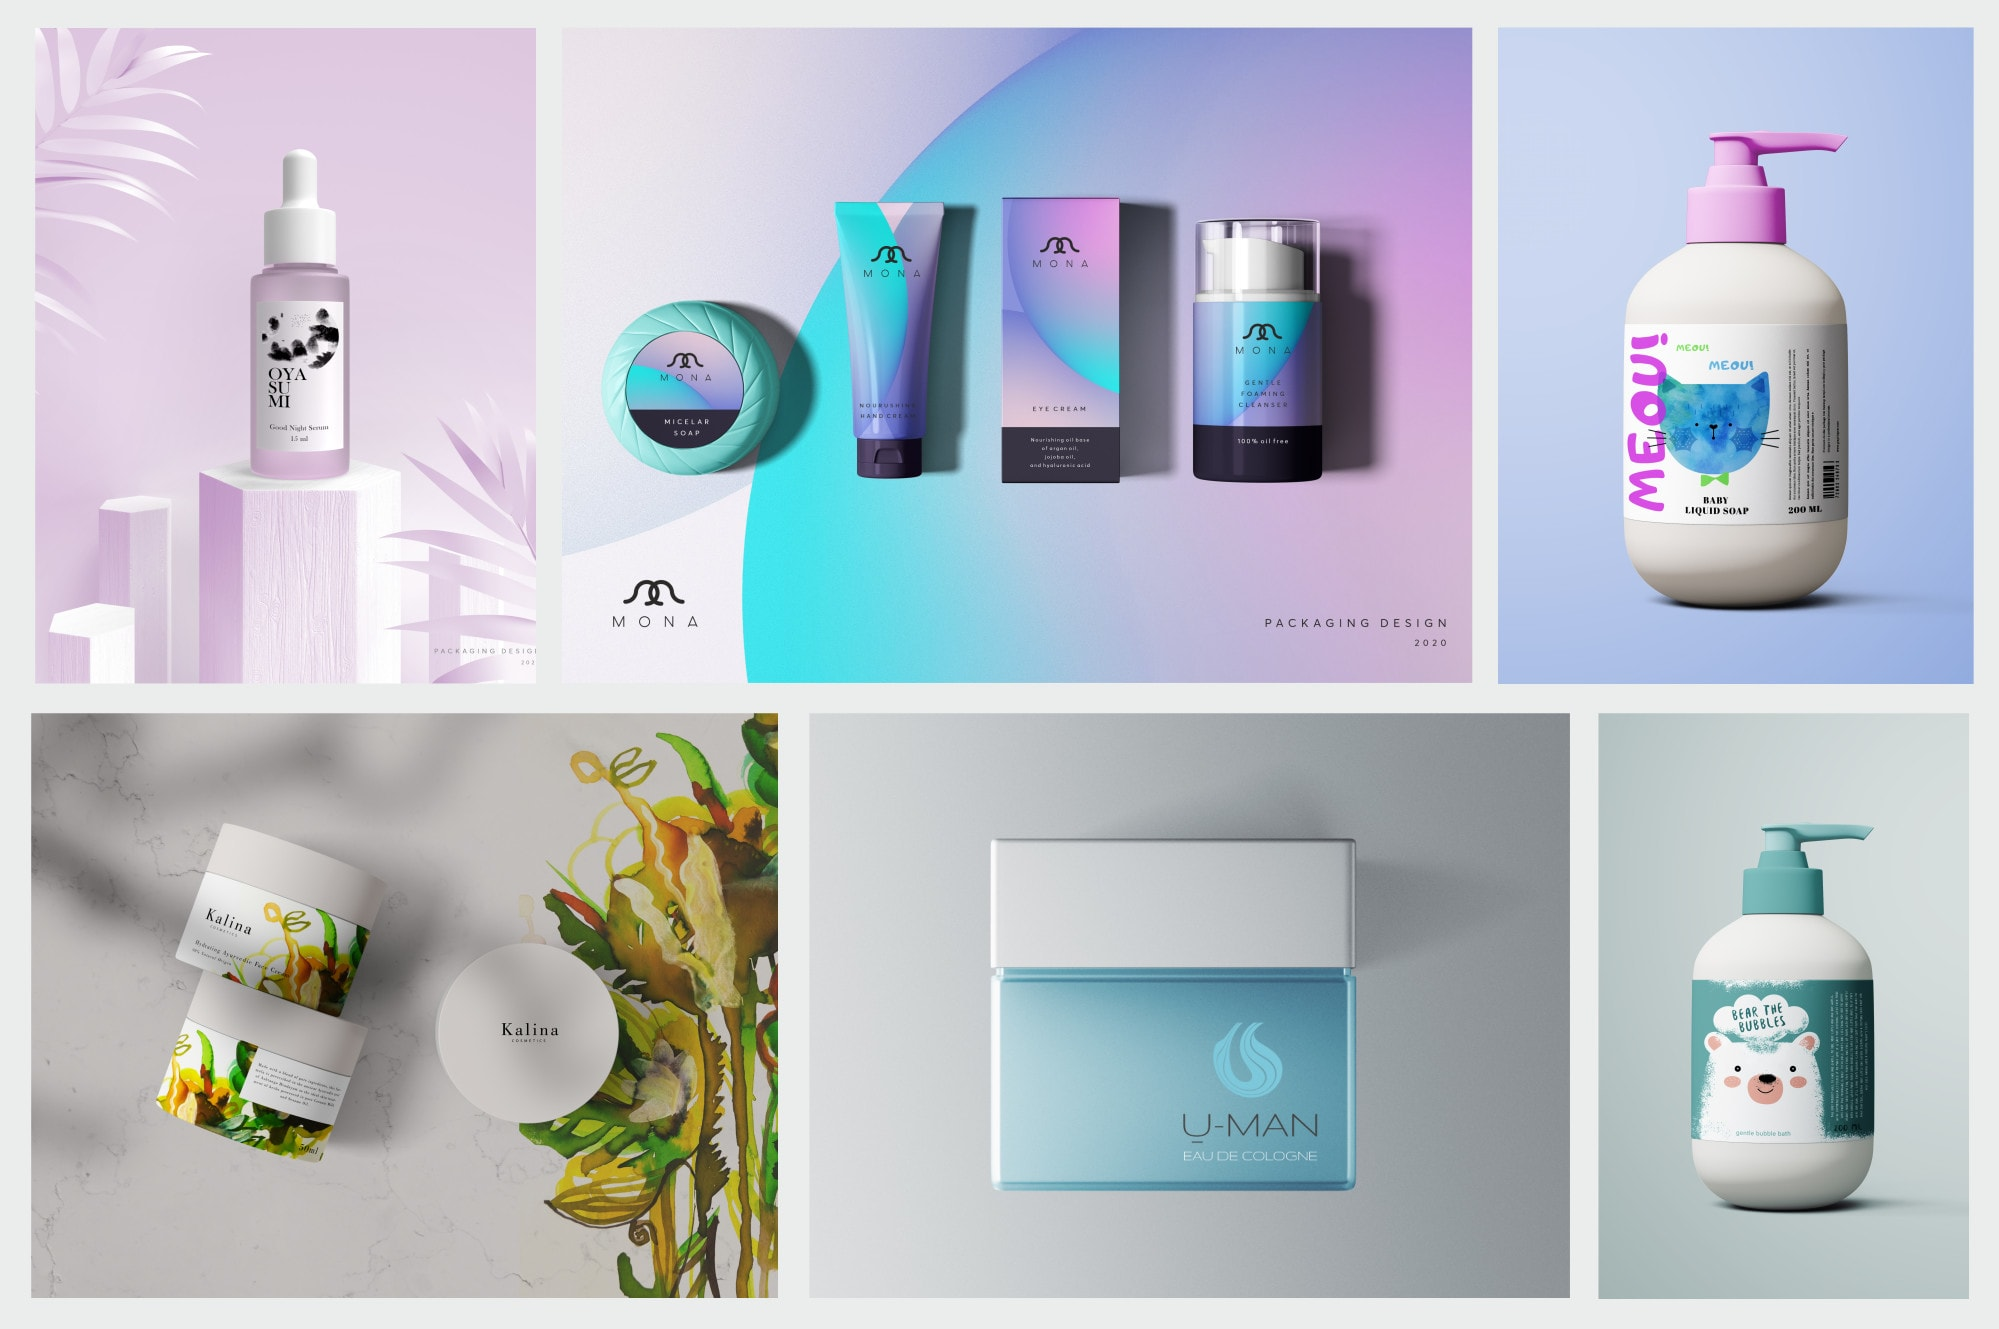 I will design modern packaging and label design for your brand